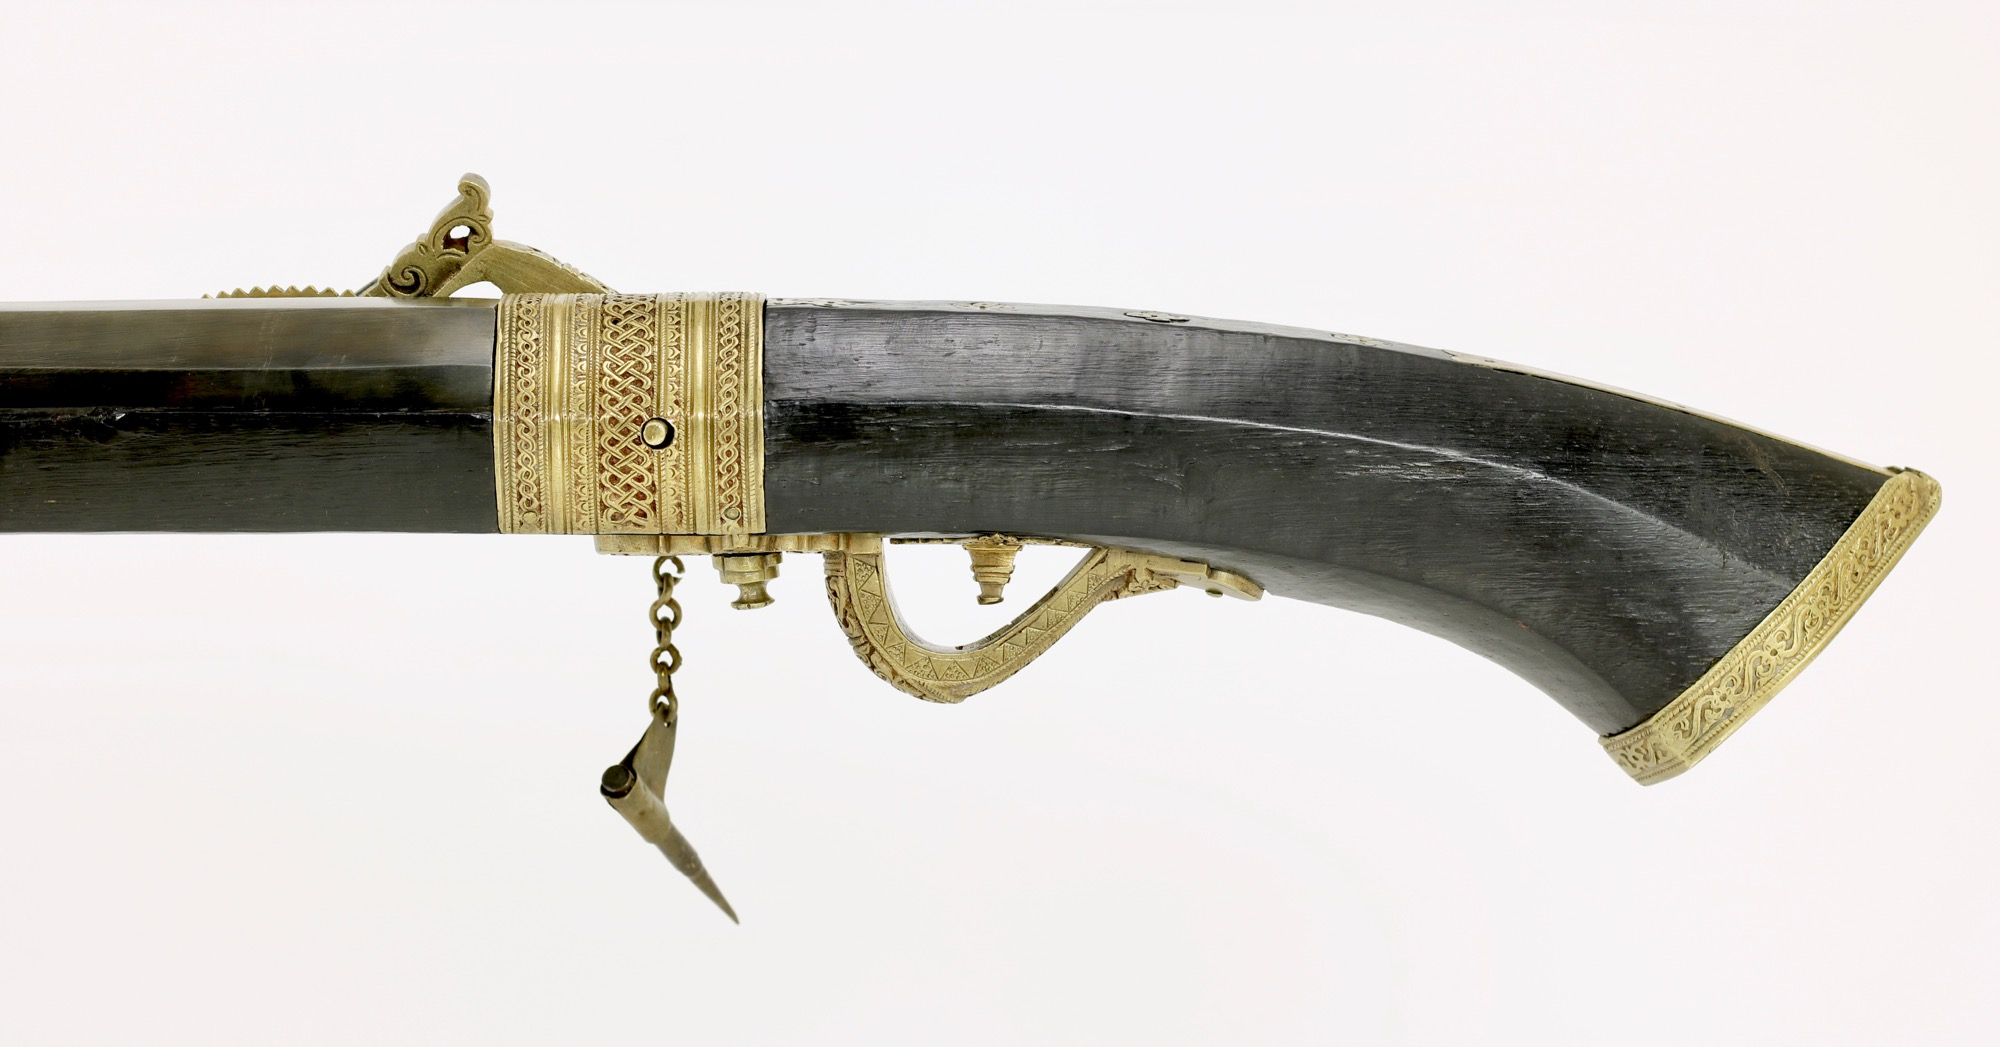 An antique Malaysian matchlock musket. www.mandarinmansion.com